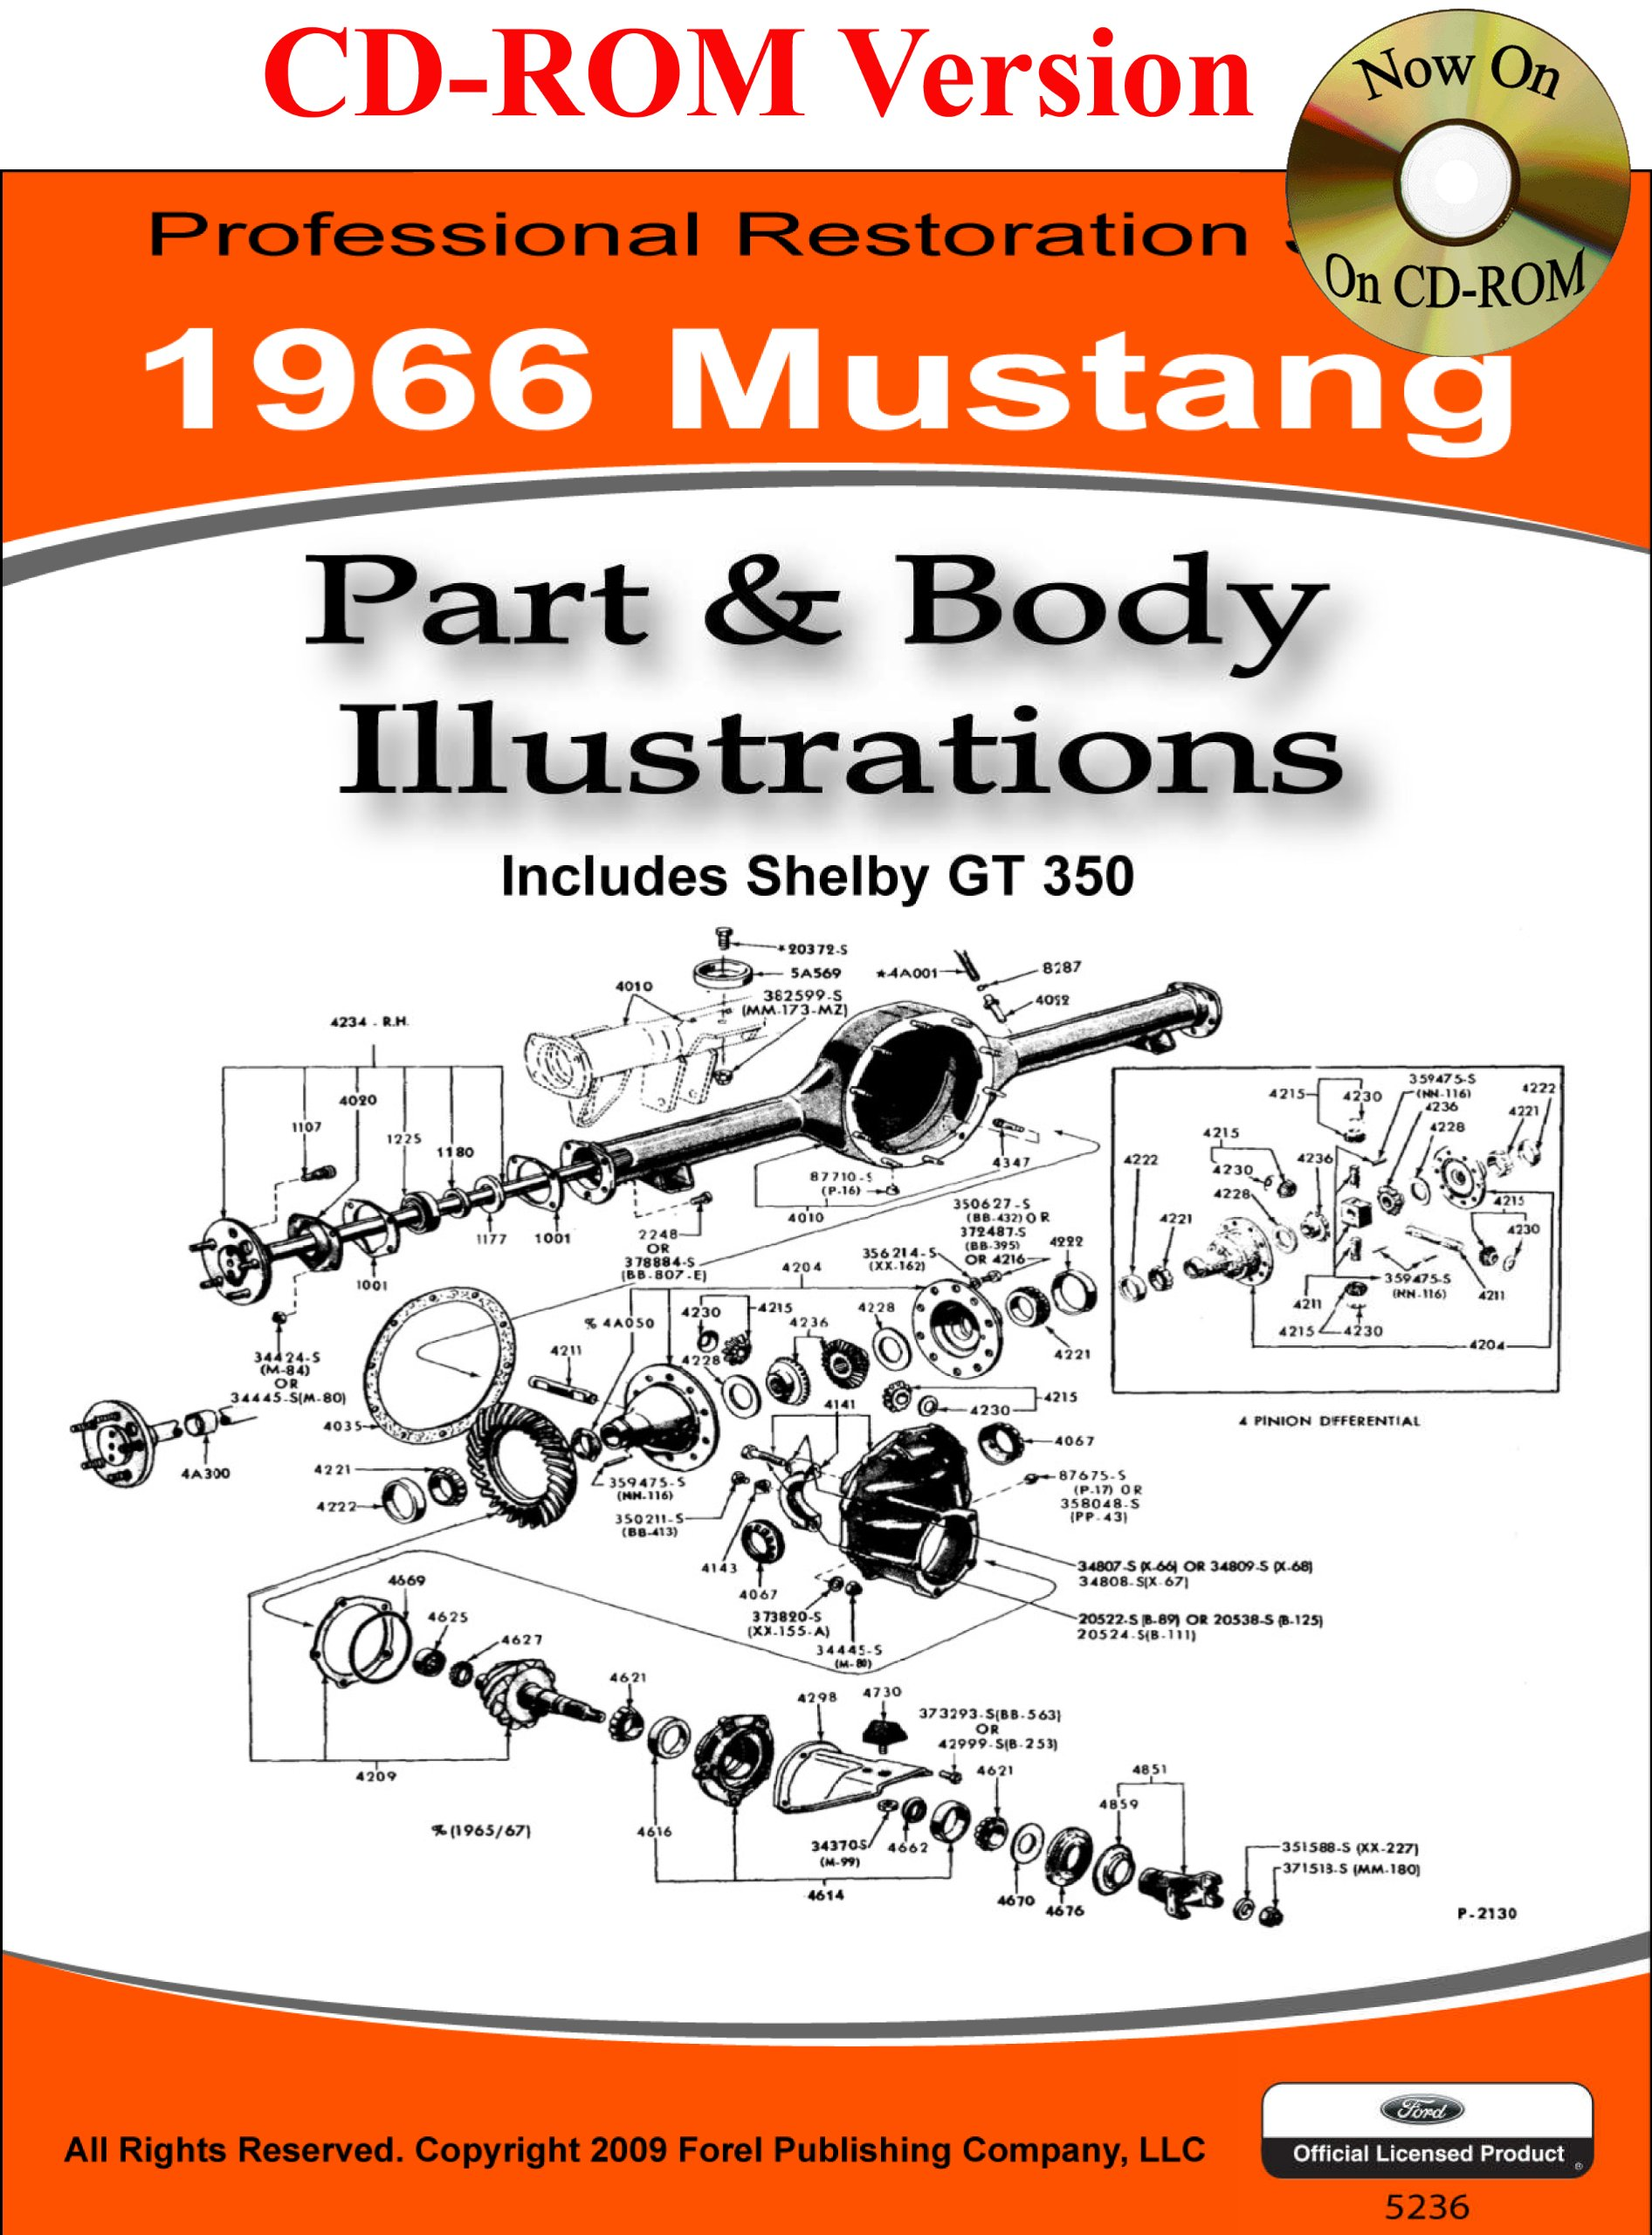 1966 Colorized Mustang Wiring Diagrams: David E. LeBlanc: 9781603710251:  Amazon.com: Books